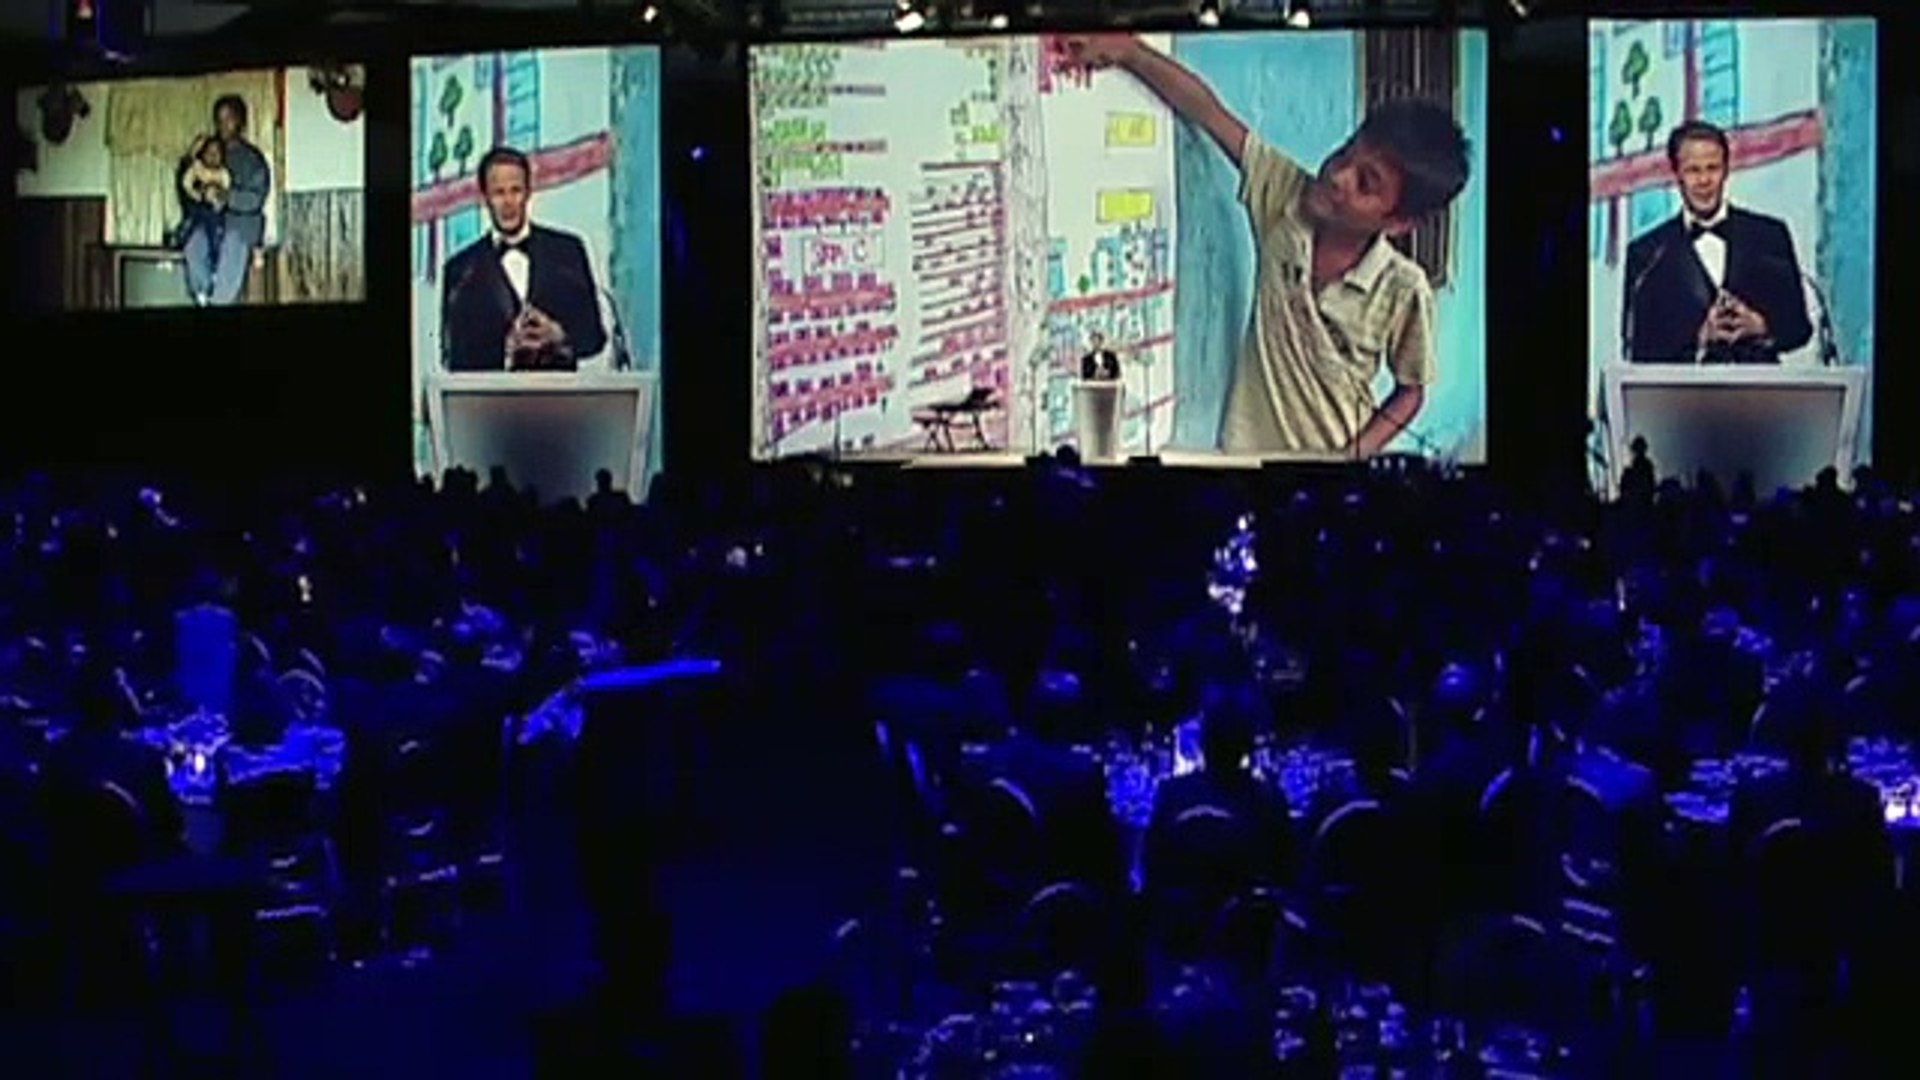 Tim Ritchie, President of The Tech, speaks at The Tech Awards Gala [HQ]